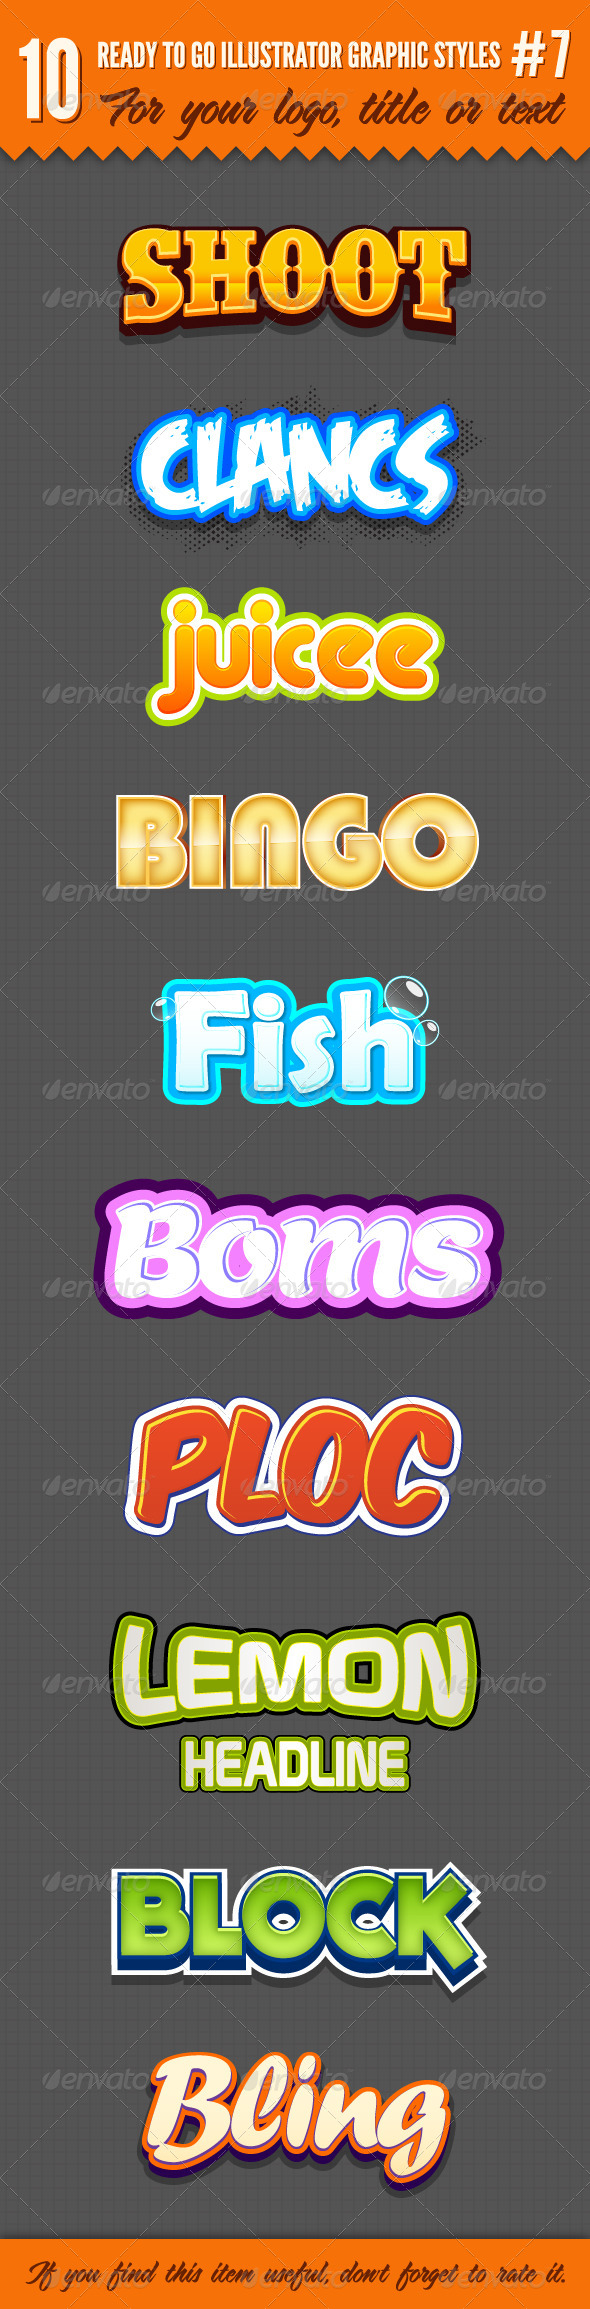 GraphicRiver 10 Logo Graphic Styles #7 5221169